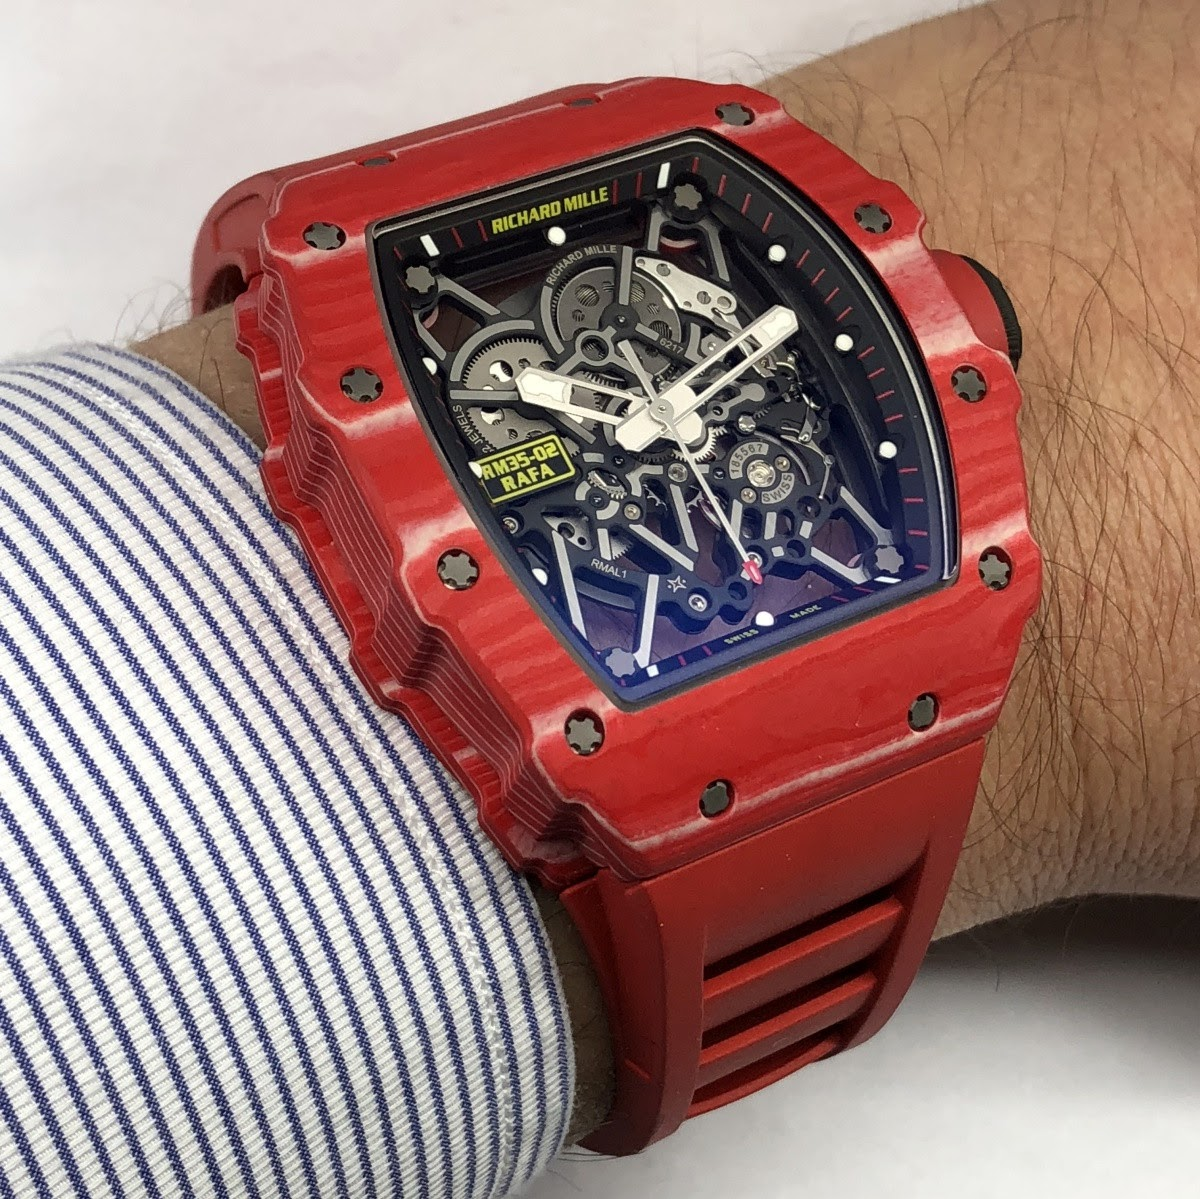 Hands On Review Of The Richard Mille Rm35 02 Rafael Nadal